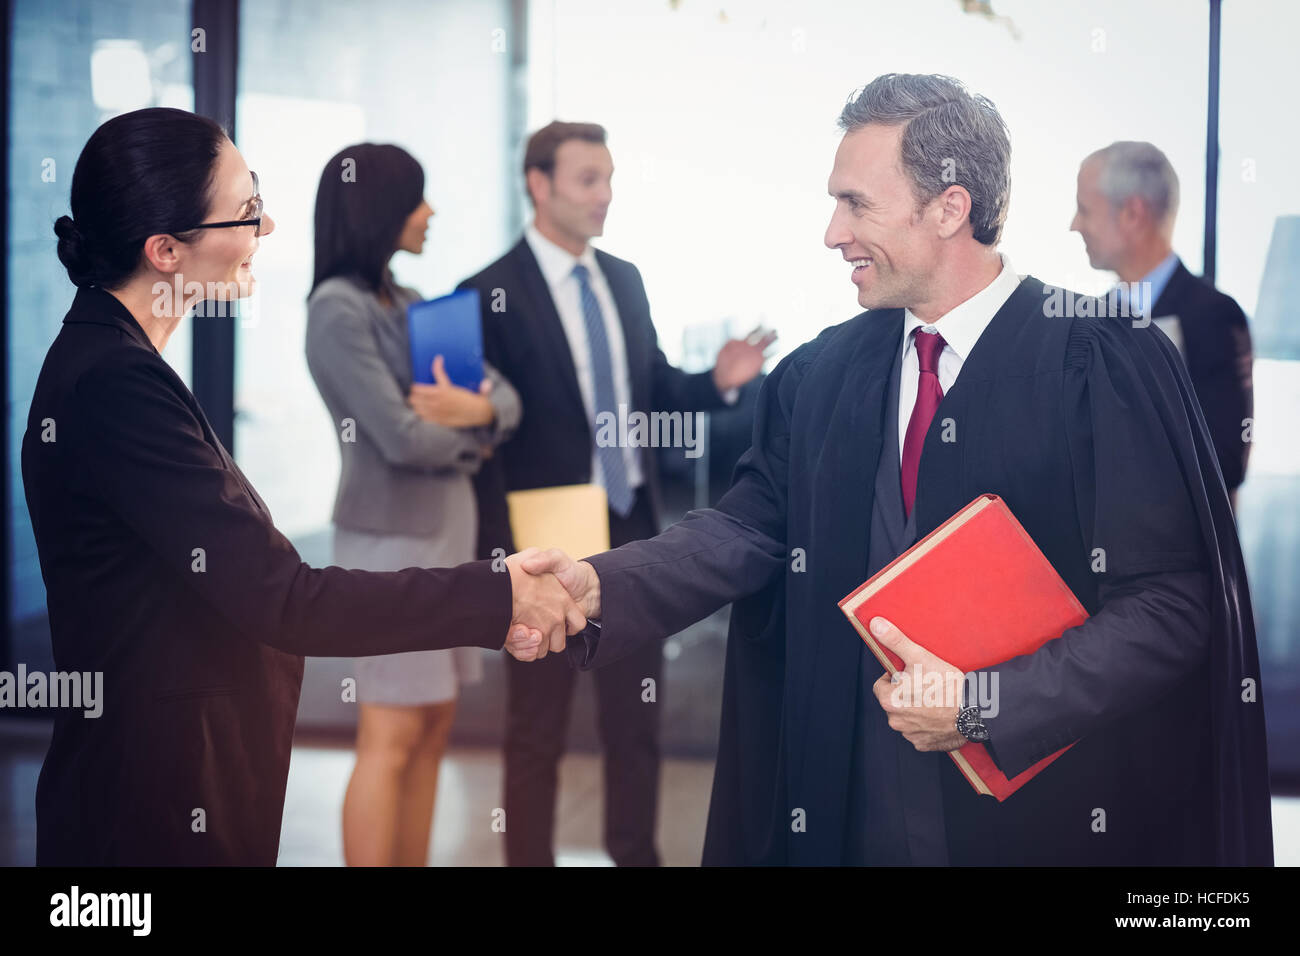 Businesswoman shaking hands with lawyer - Stock Image